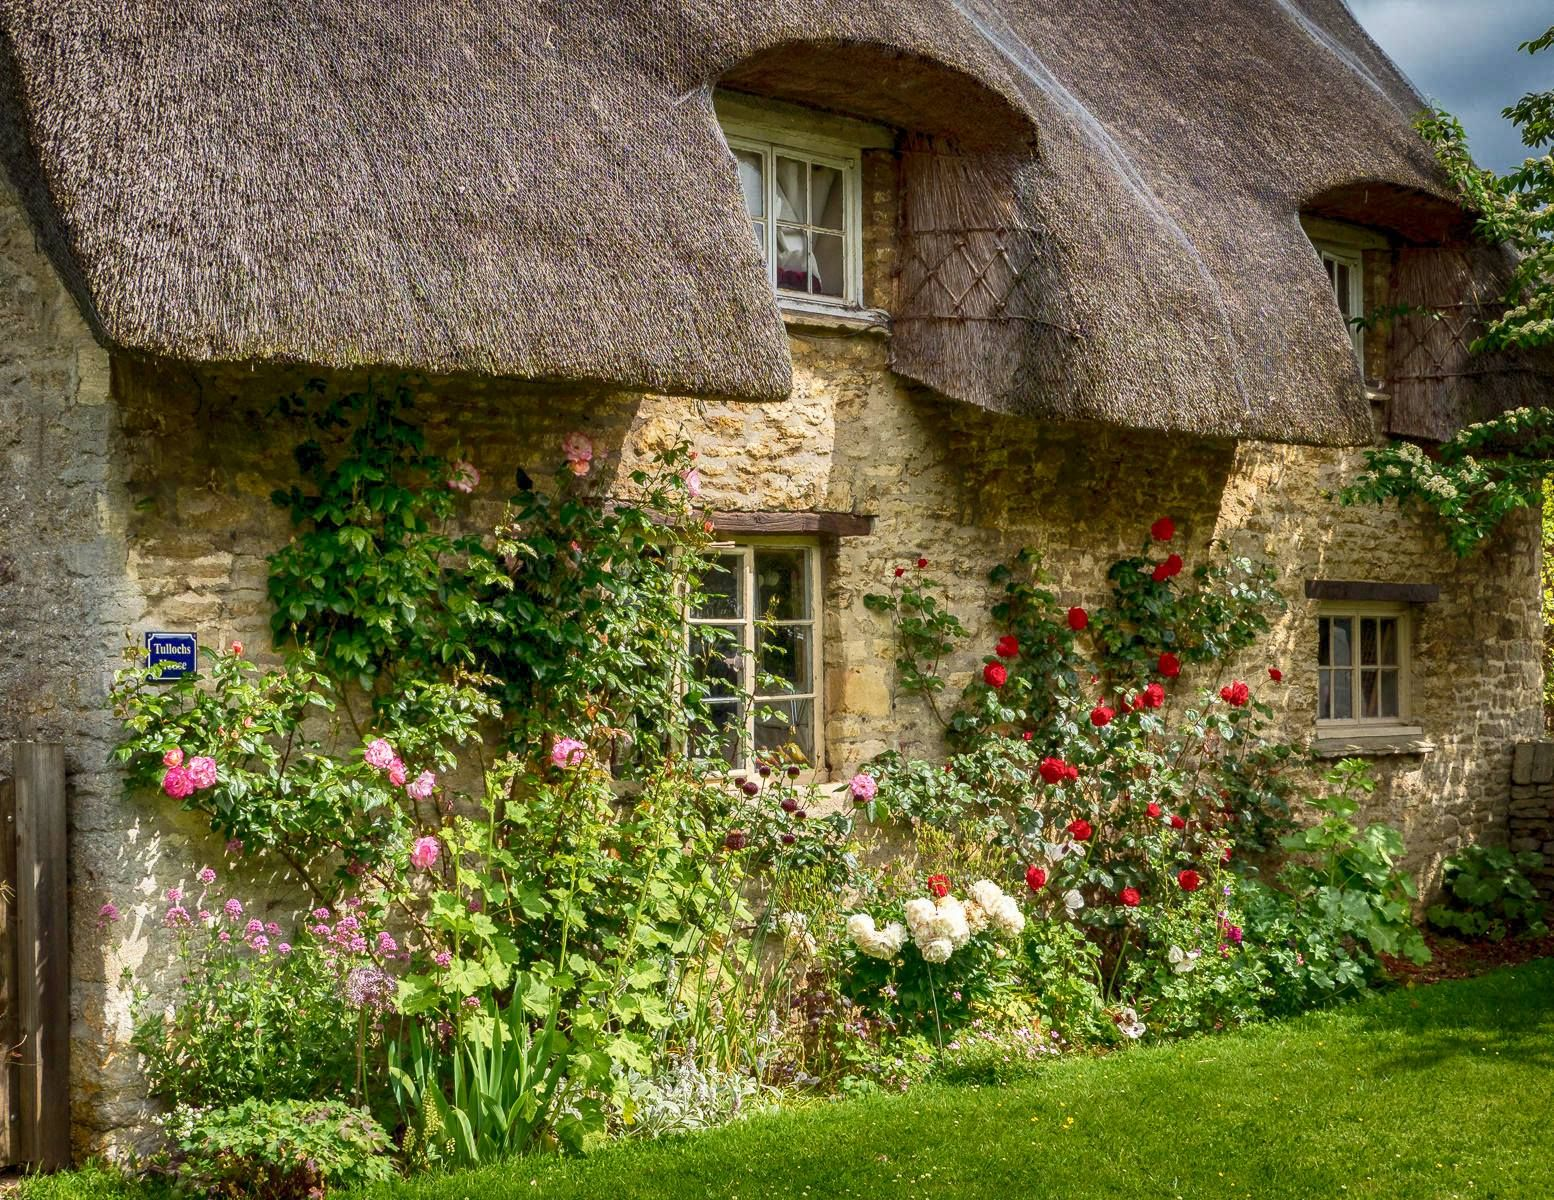 Lovely Old Thatched Cottage In The Village Of Minster Lovell In The Cotswolds Of Oxfordshire Cottage Style English Cottage Garden Romantic Cottage